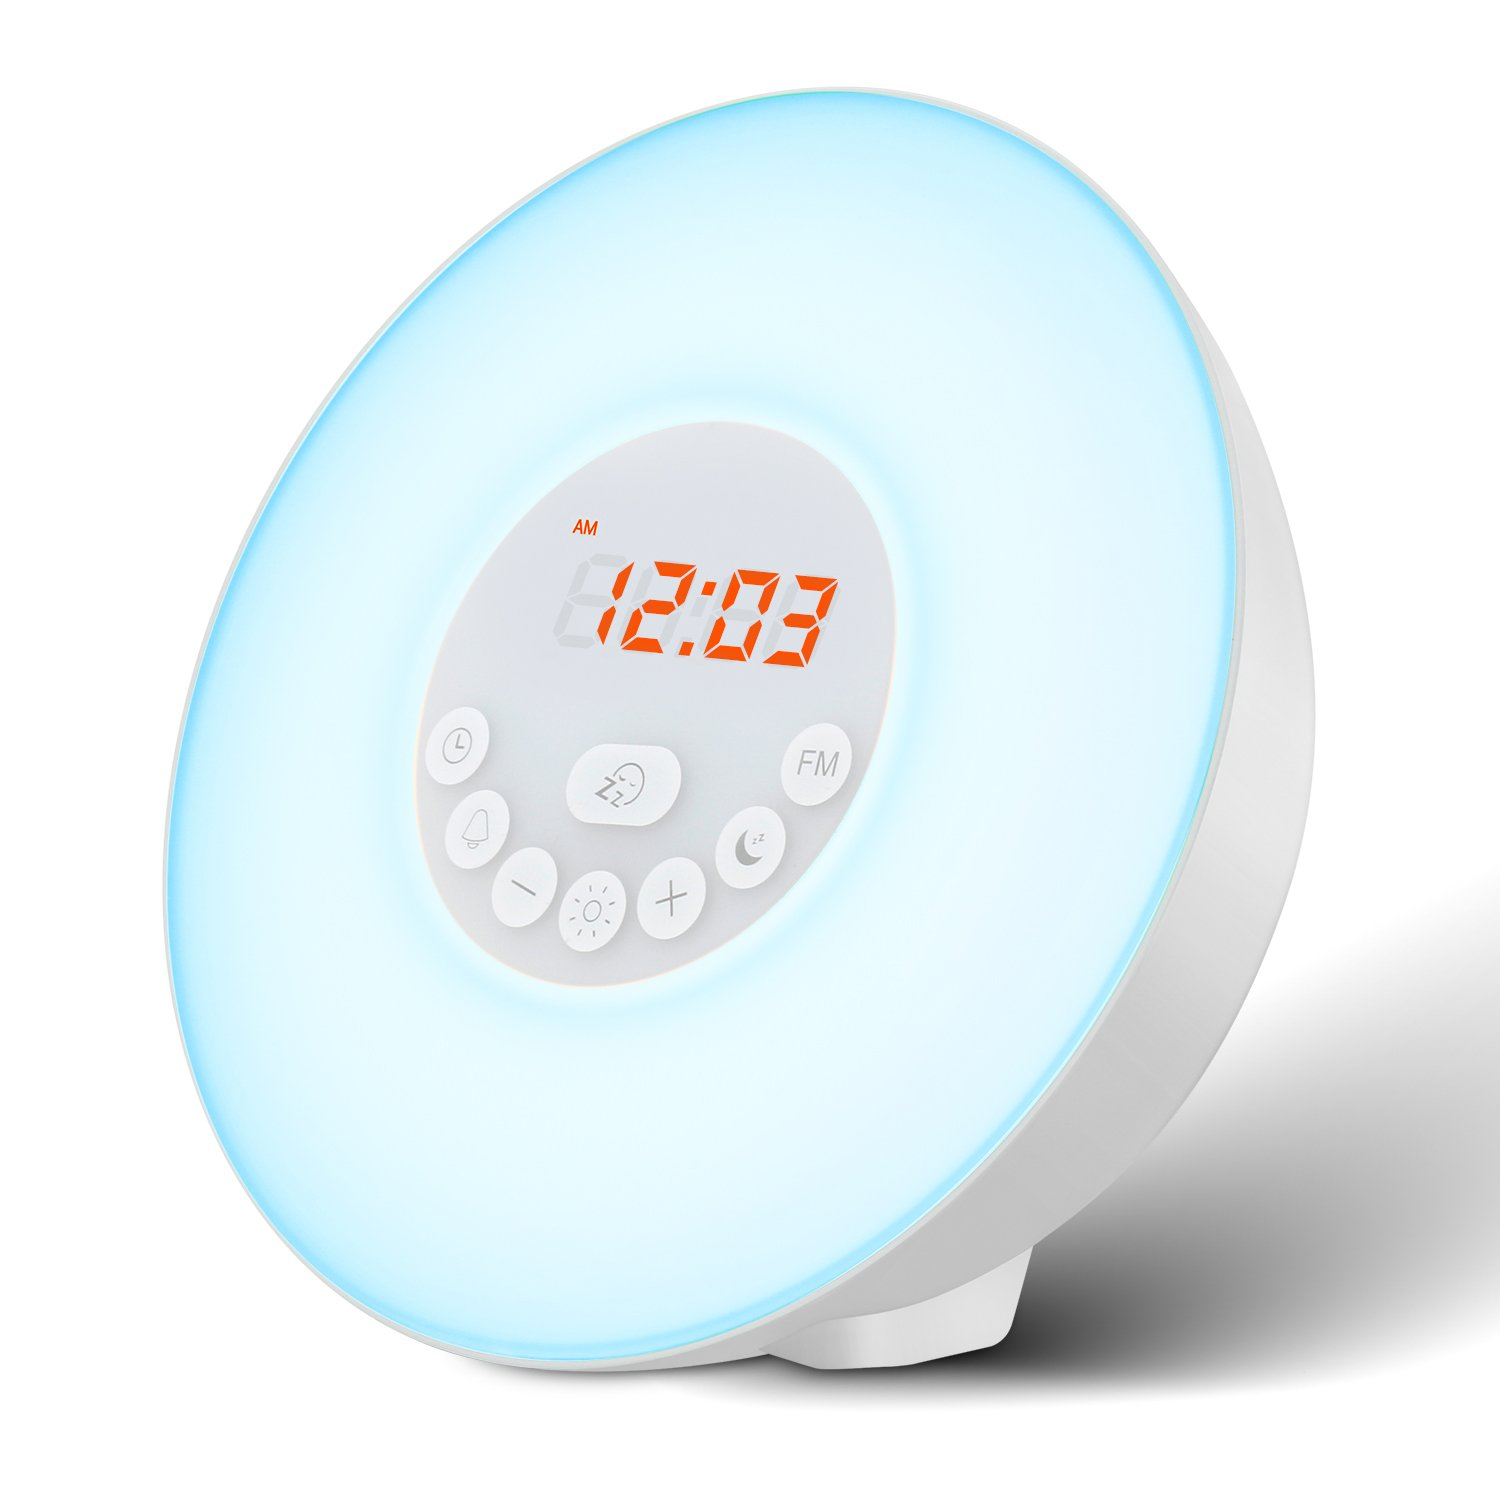 Luz Despertador Mospro Alarma Con Repetición De Luces Nocturna Con LED Digital